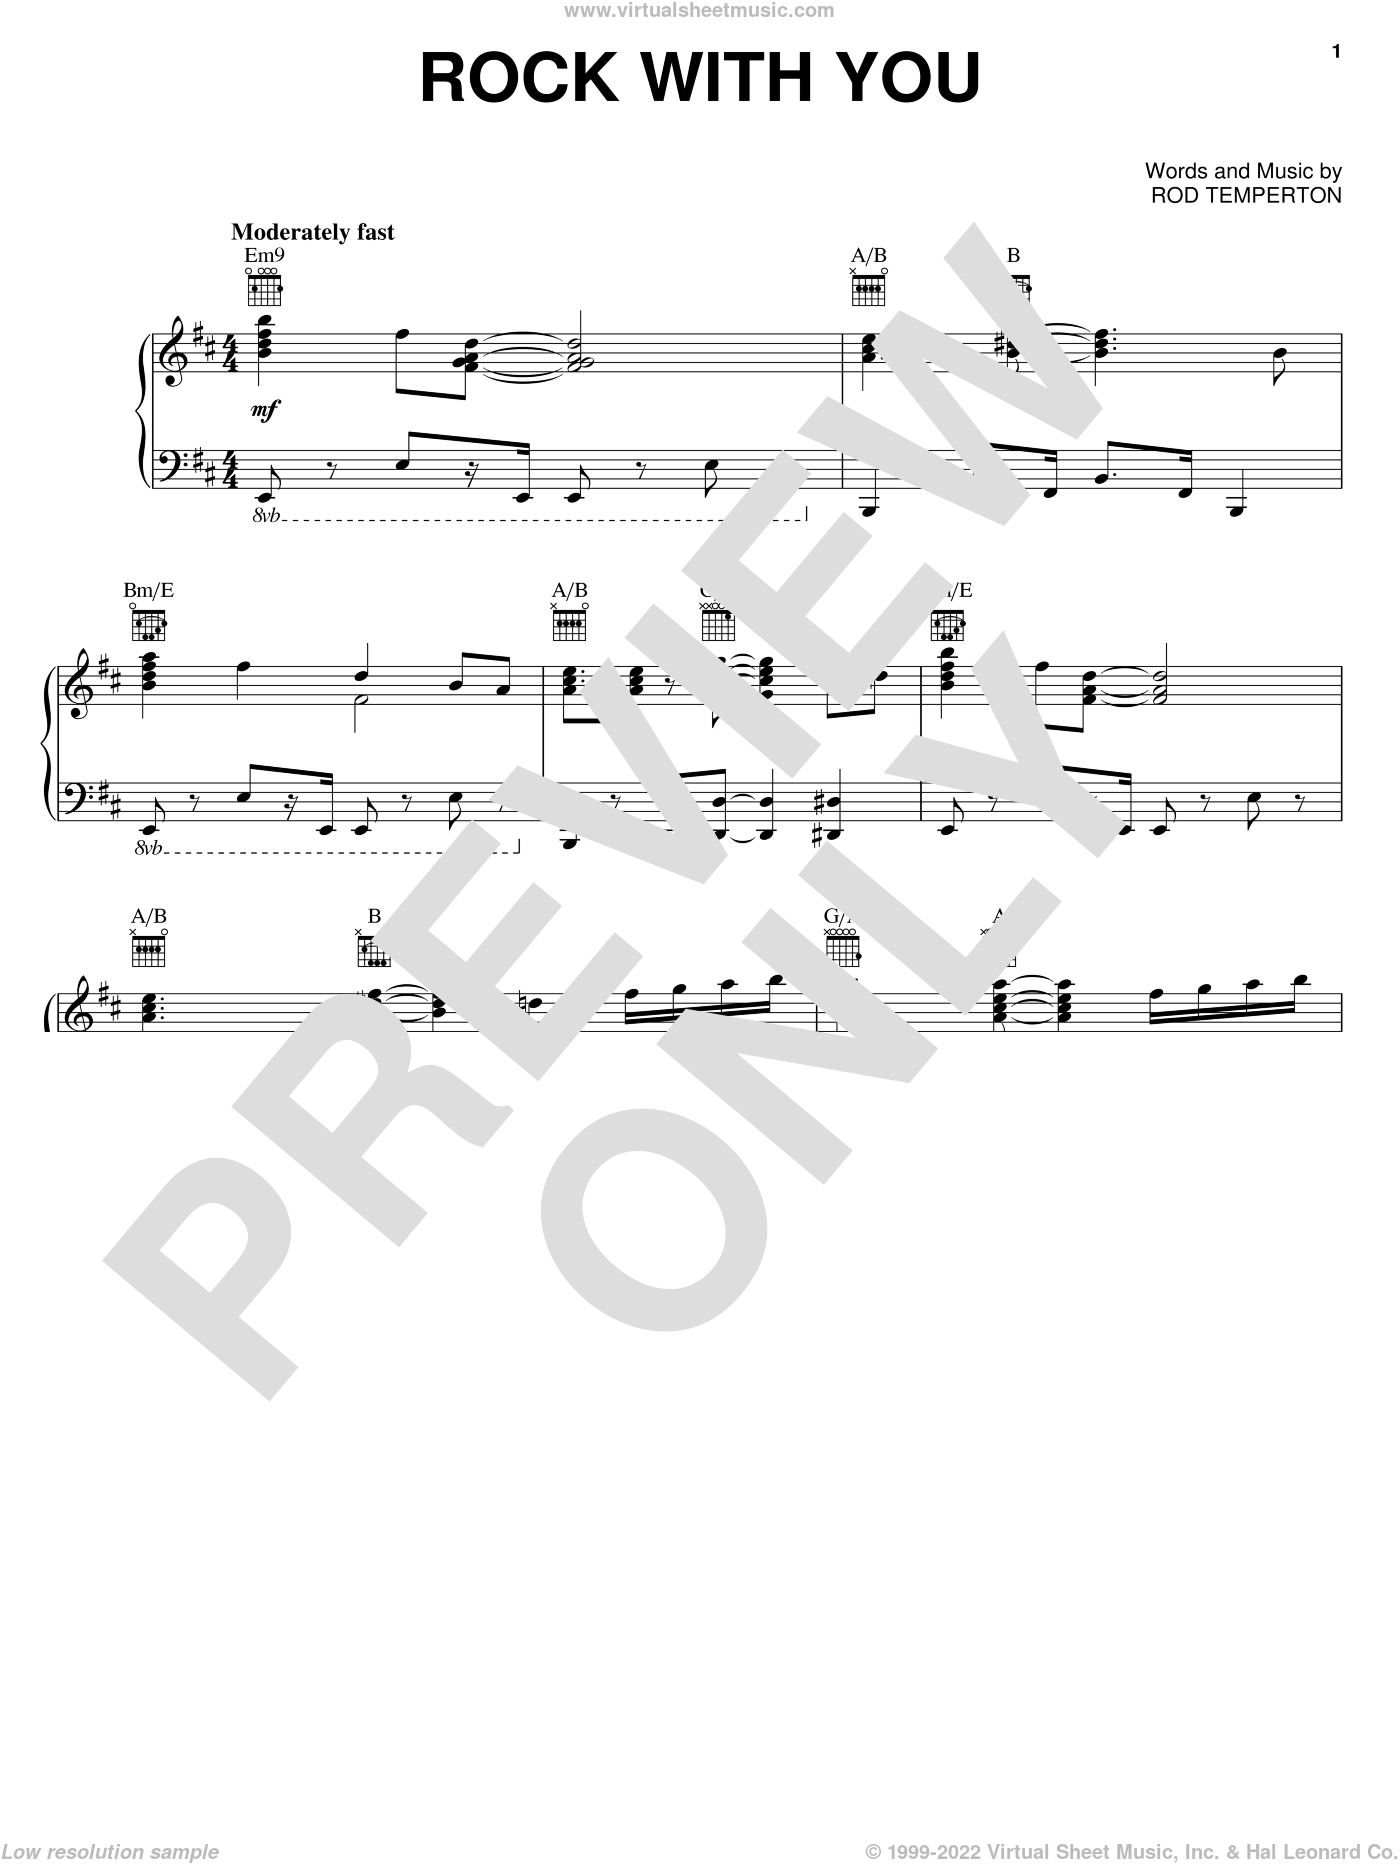 Rock With You sheet music for voice, piano or guitar by Michael Jackson and Rod Temperton, intermediate skill level